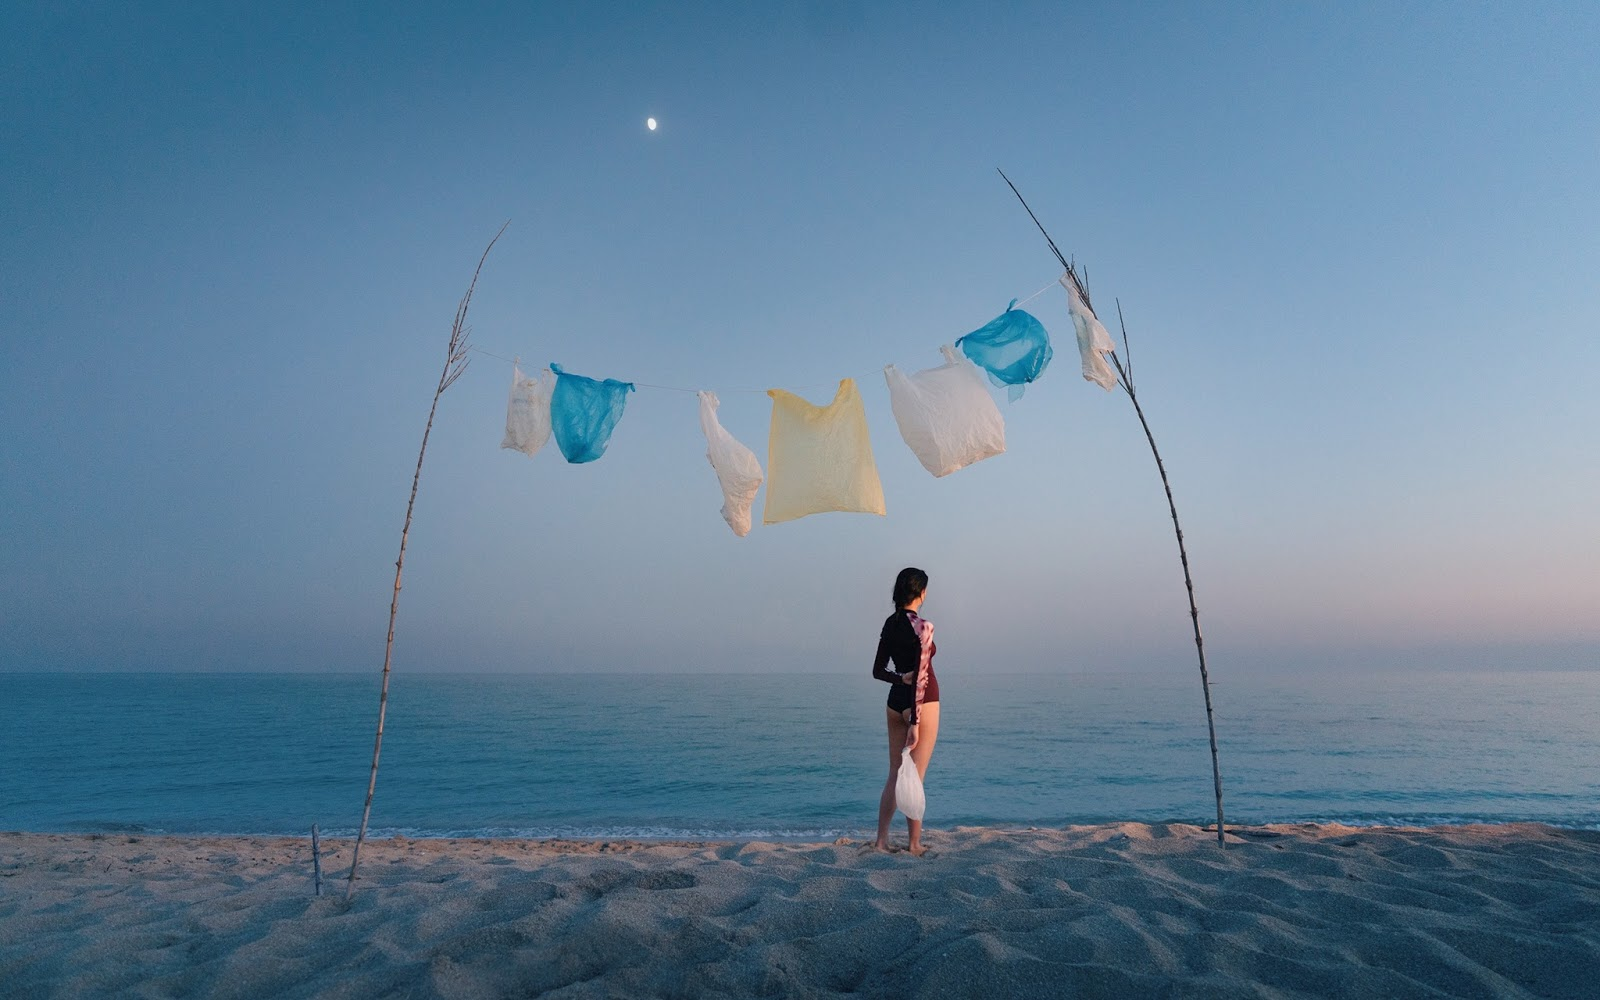 Plastic by the Sea by Simone Bramante